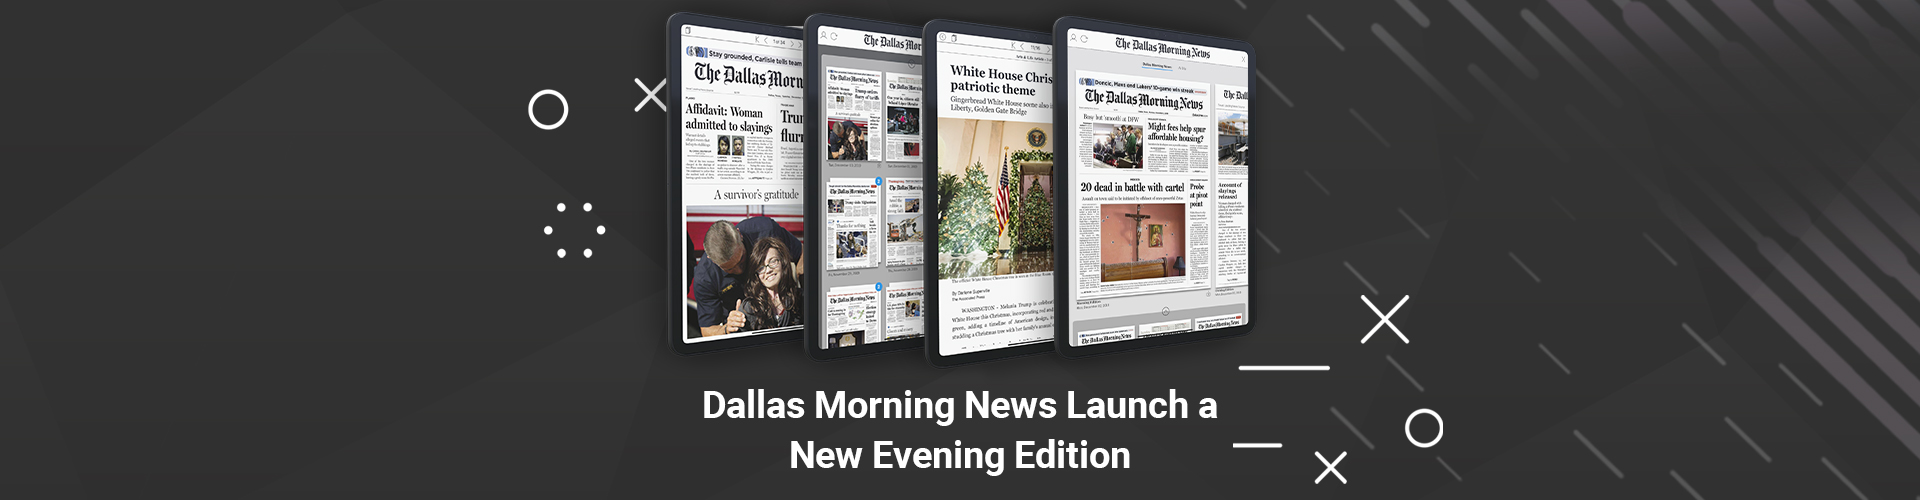 Image of Press Release: The Dallas Morning News Launches Evening Edition with PageSuite